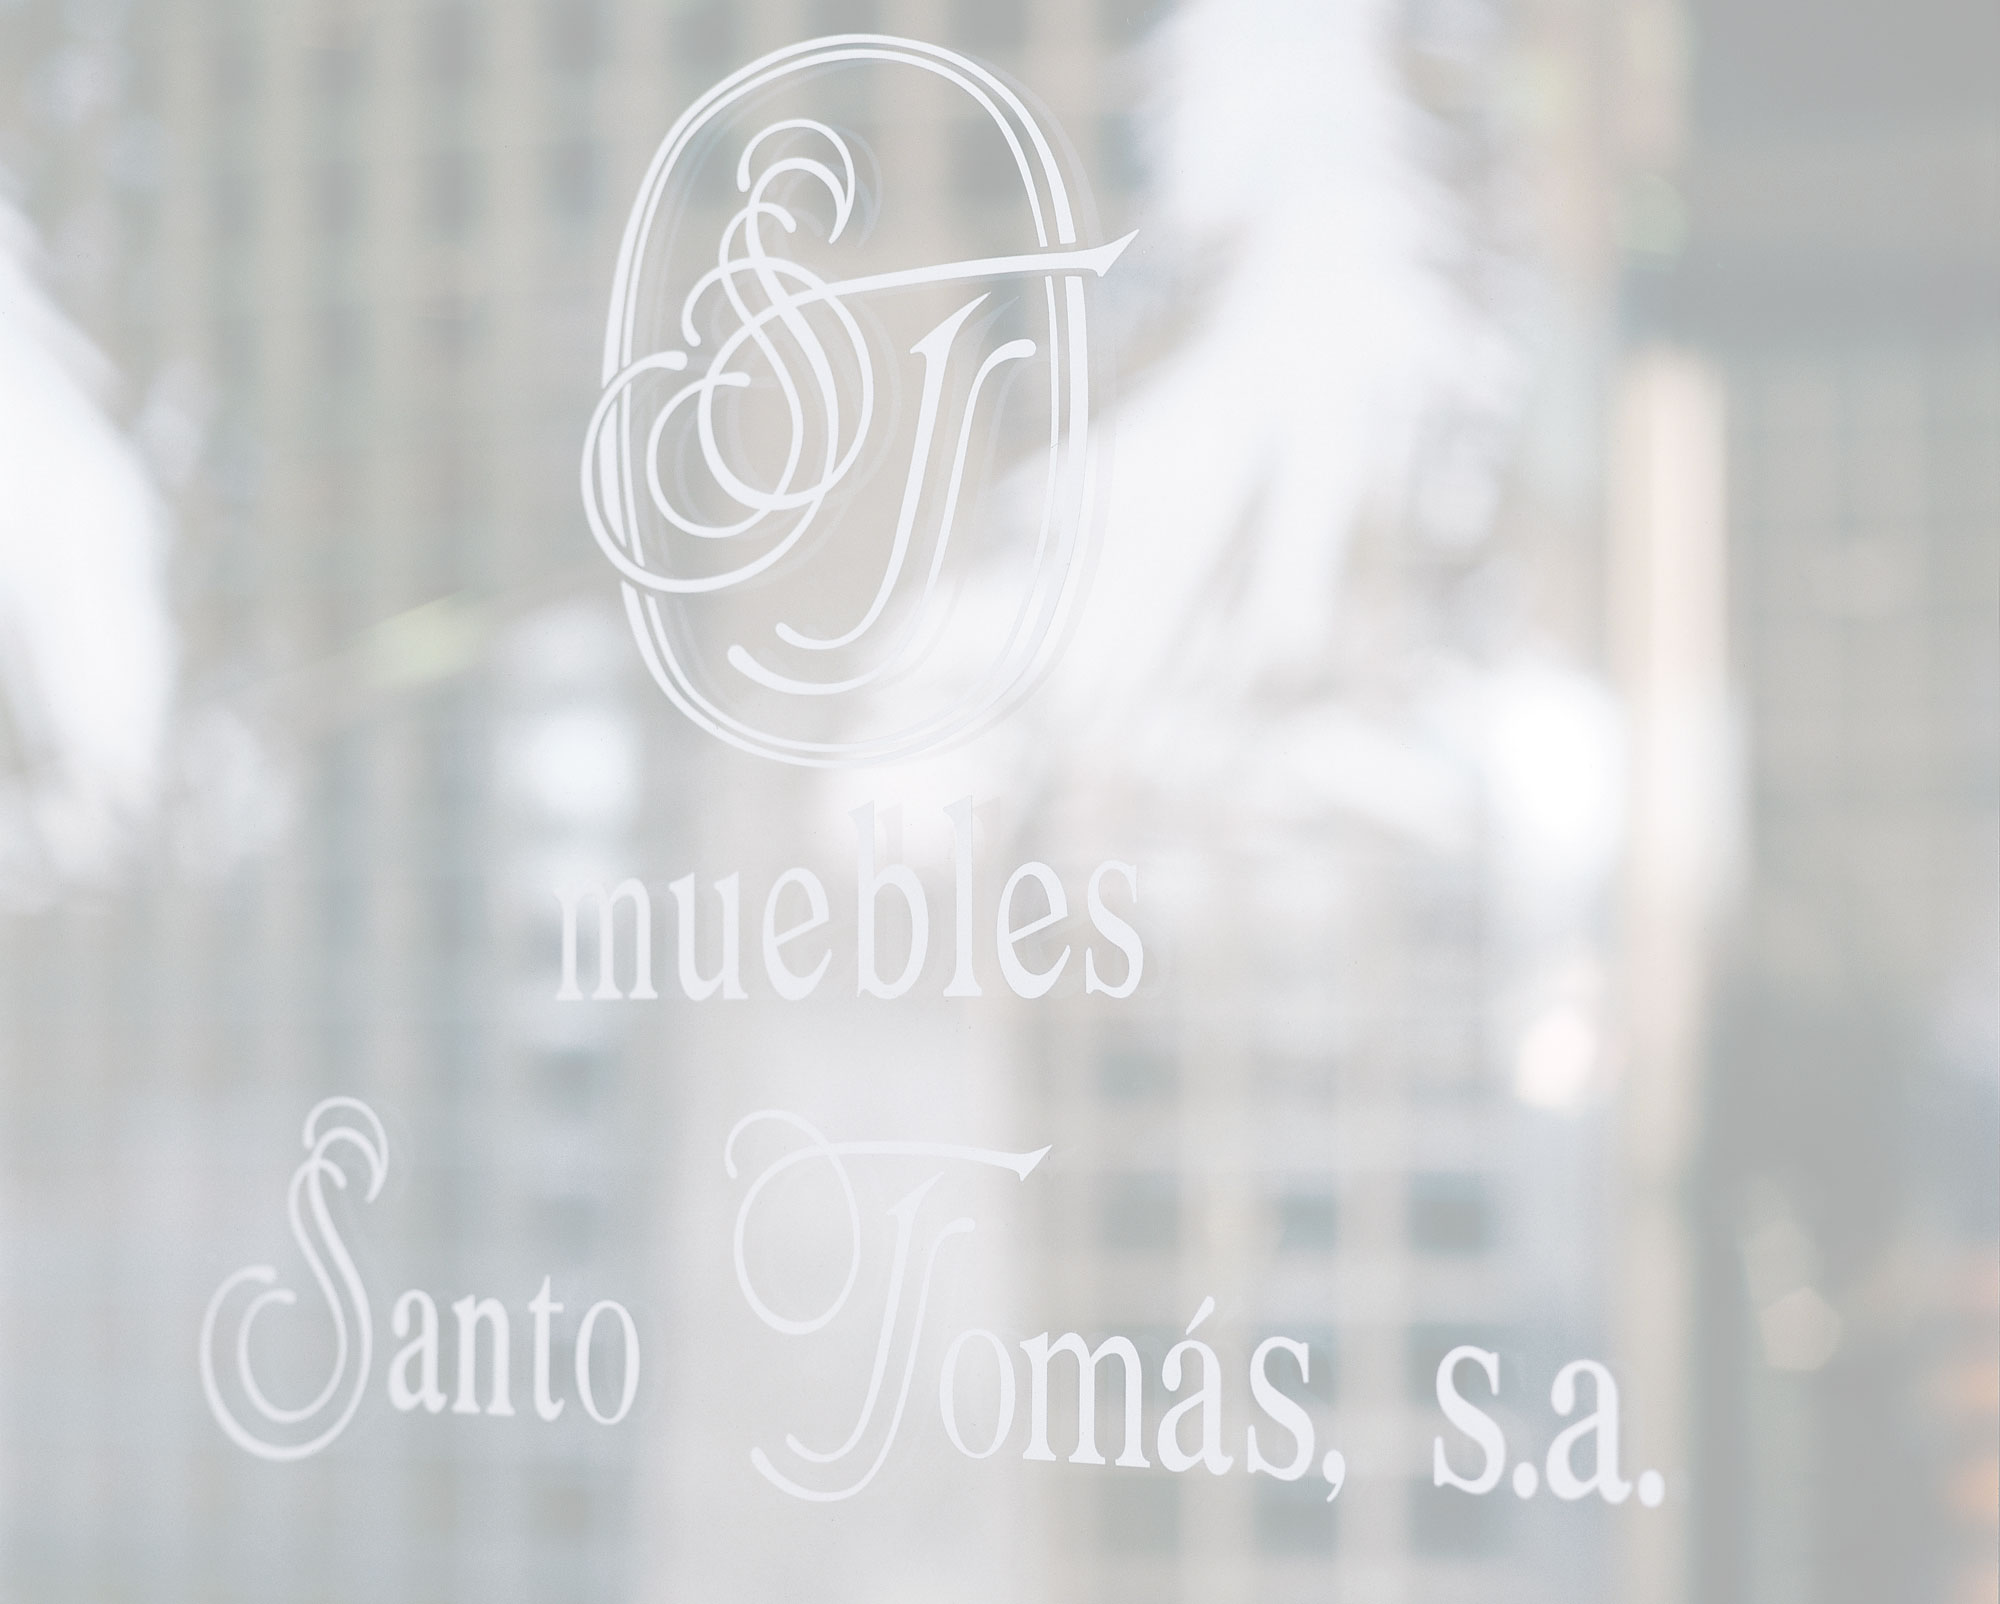 Fabricante muebles contract muebles santo tom s s a for Muebles santo tomas